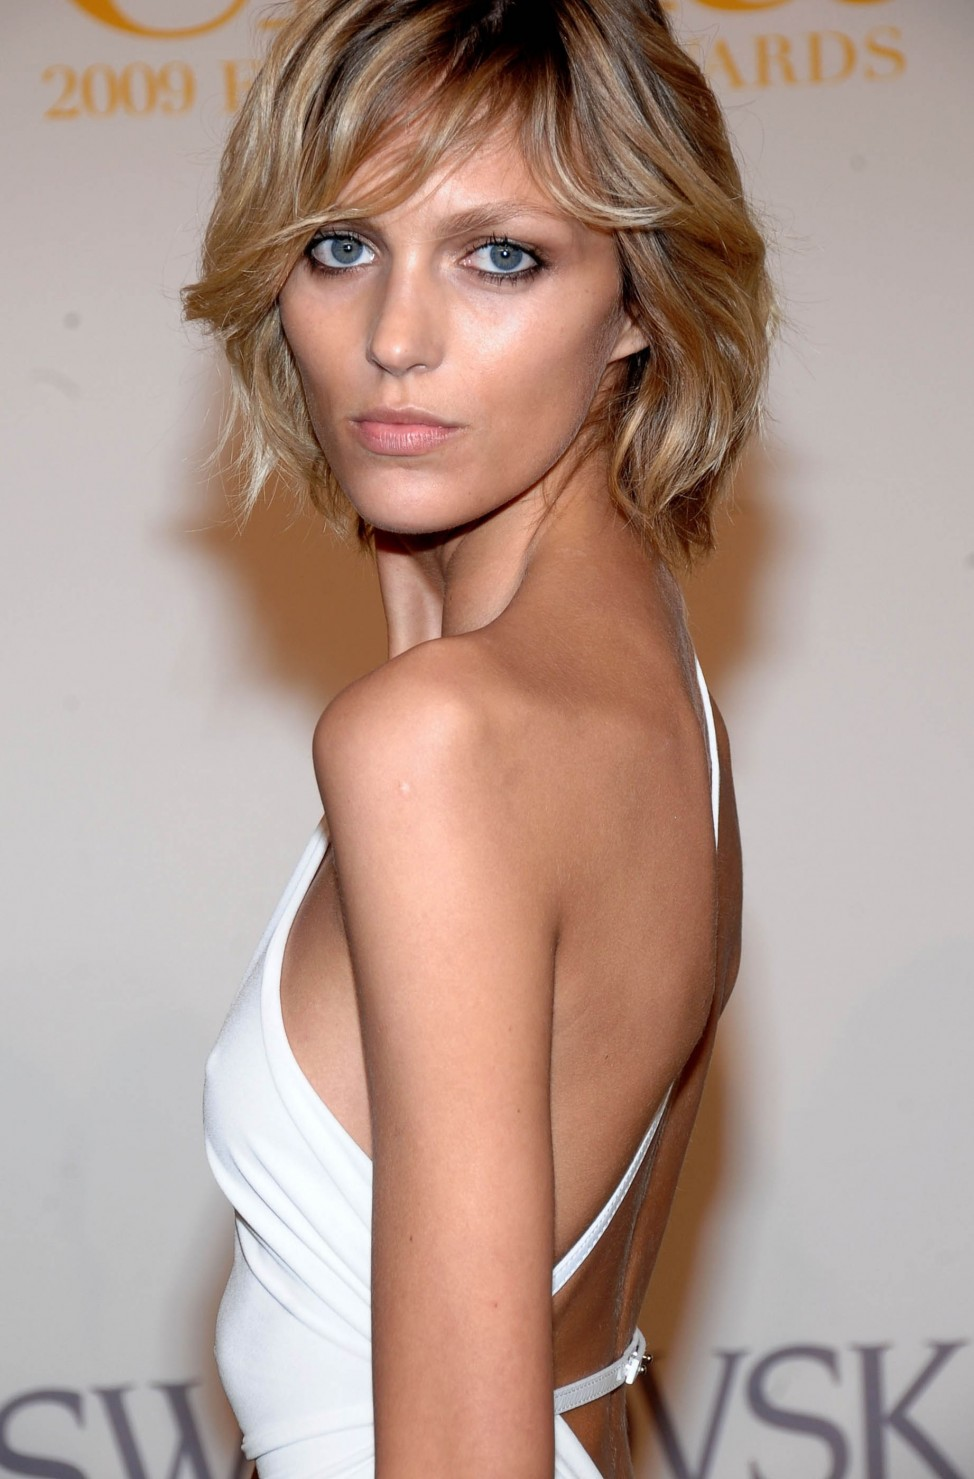 Fashion Icon: Anja Rubik